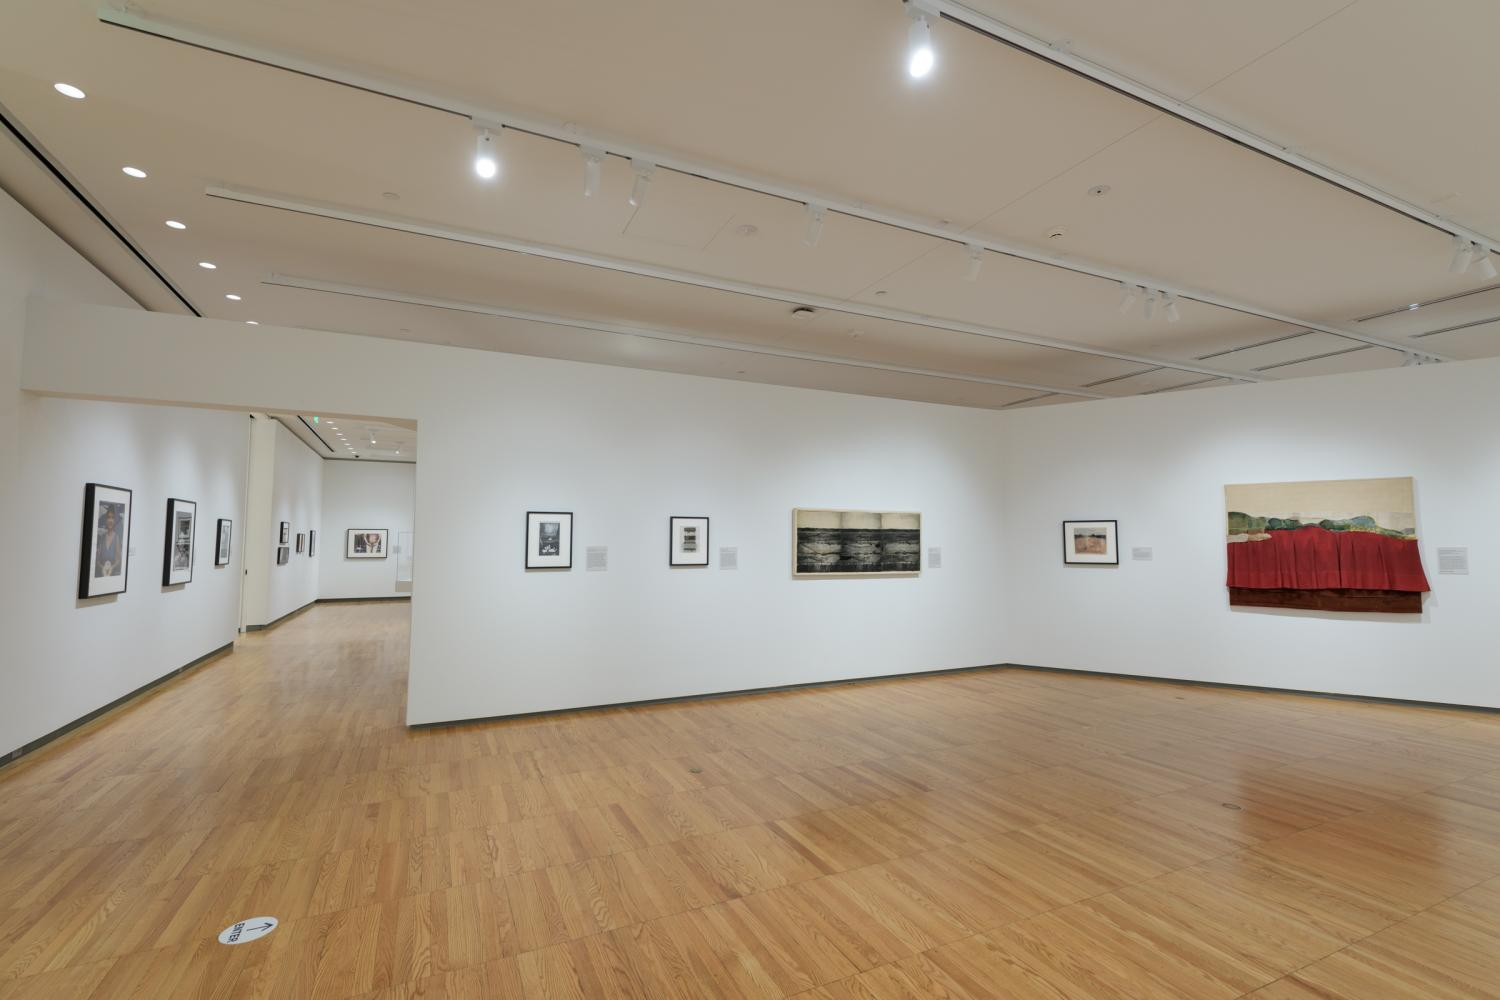 Image of art installed in a gallery, with emphasis on the new LED lights at the ceiling. The artwork is by Bea Nettles, and the gallery is KAM's recently renovated East Gallery